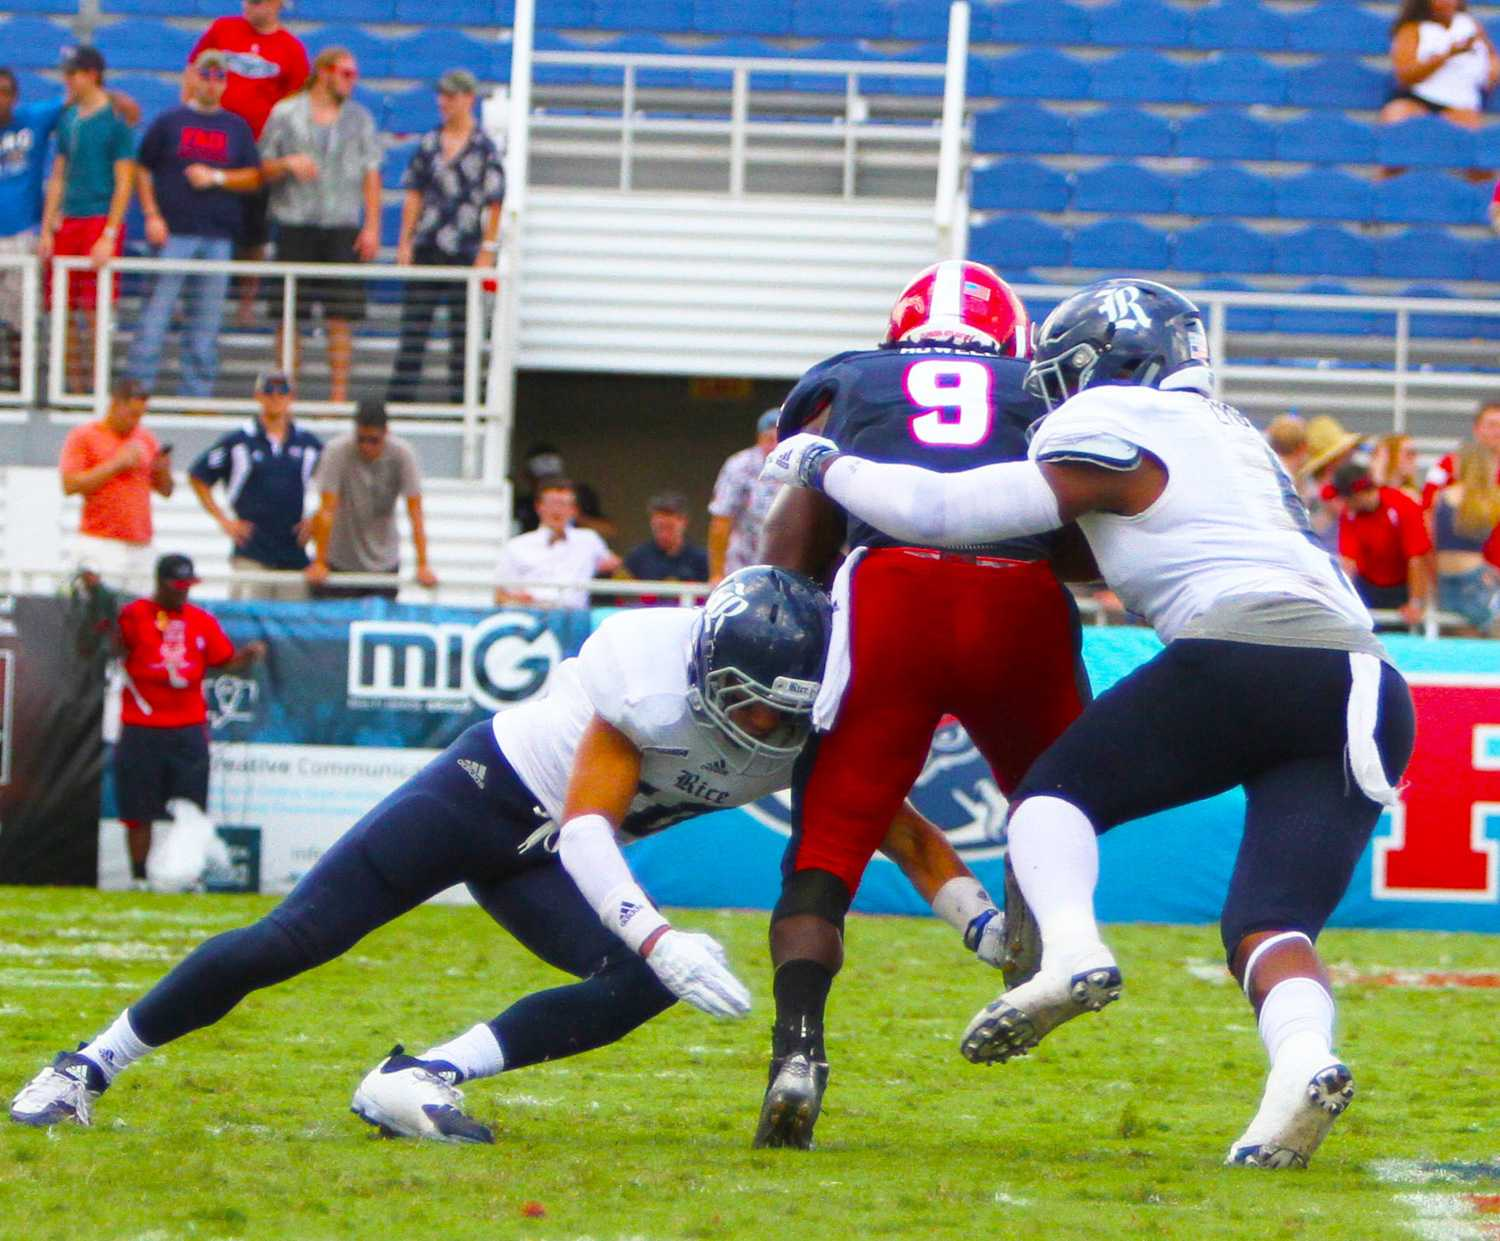 FAU sophomore running back Greg Howell (9) goes for the endzone but gets slammed in a Rice sandwich by freshman safety J.P. Thompson (10) and junior linebacker. Jessica Wilkerson | Contributing Photographer